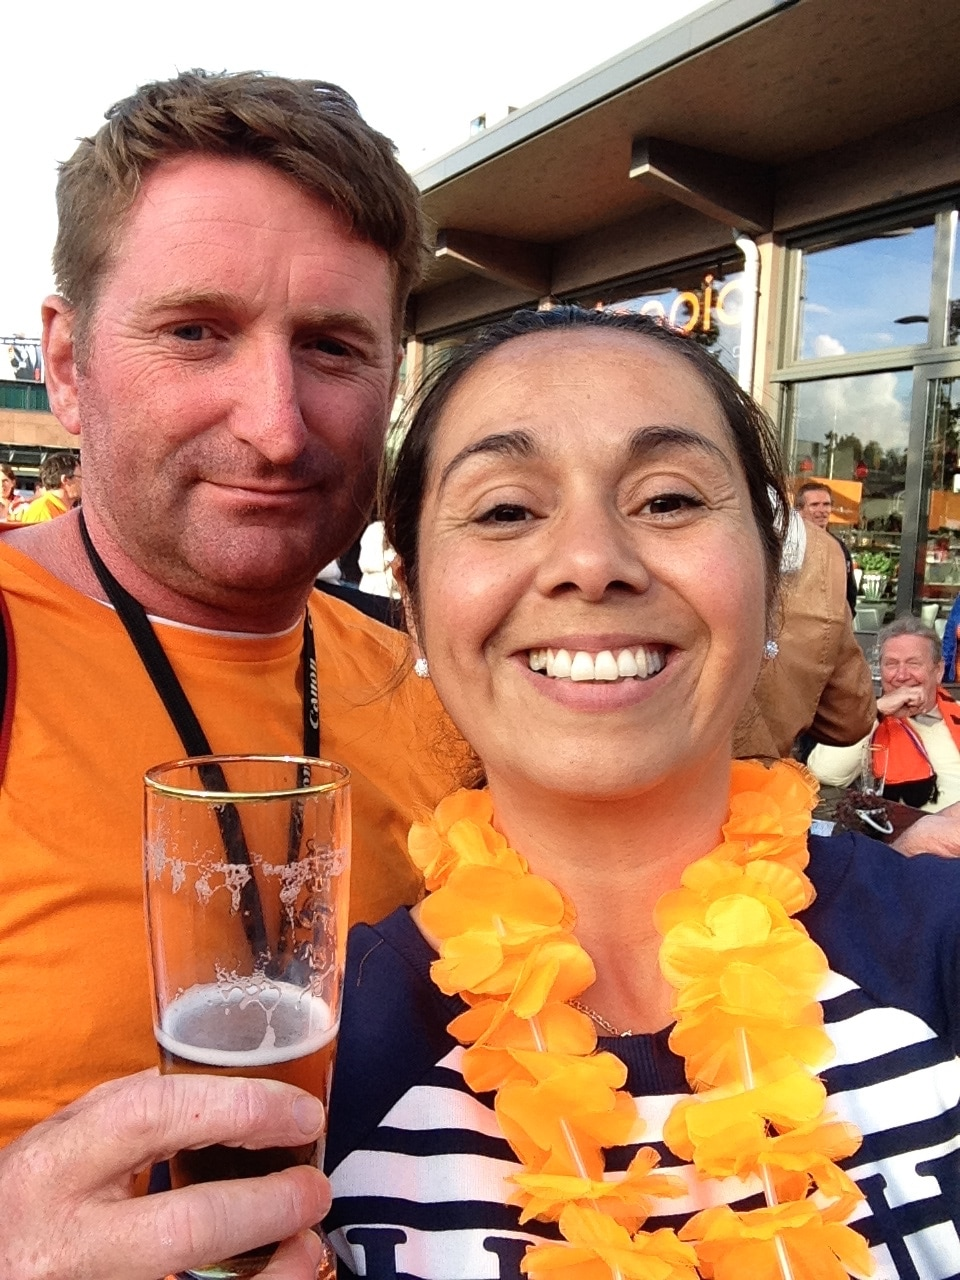 Paul & Maria from Hoofddorp